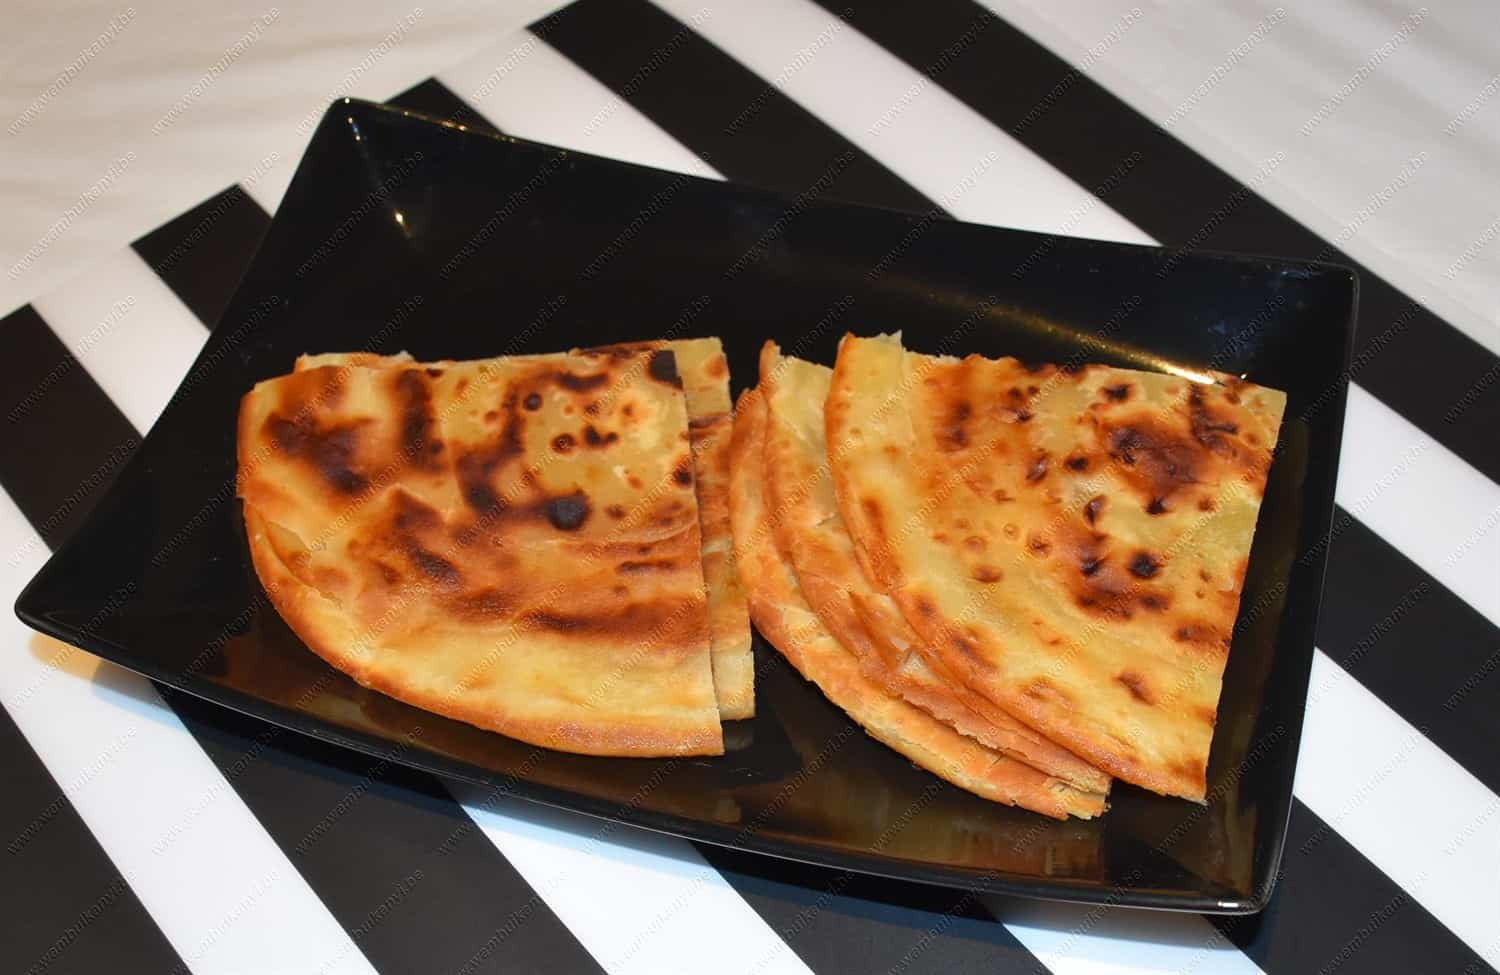 How to Make Chapatis